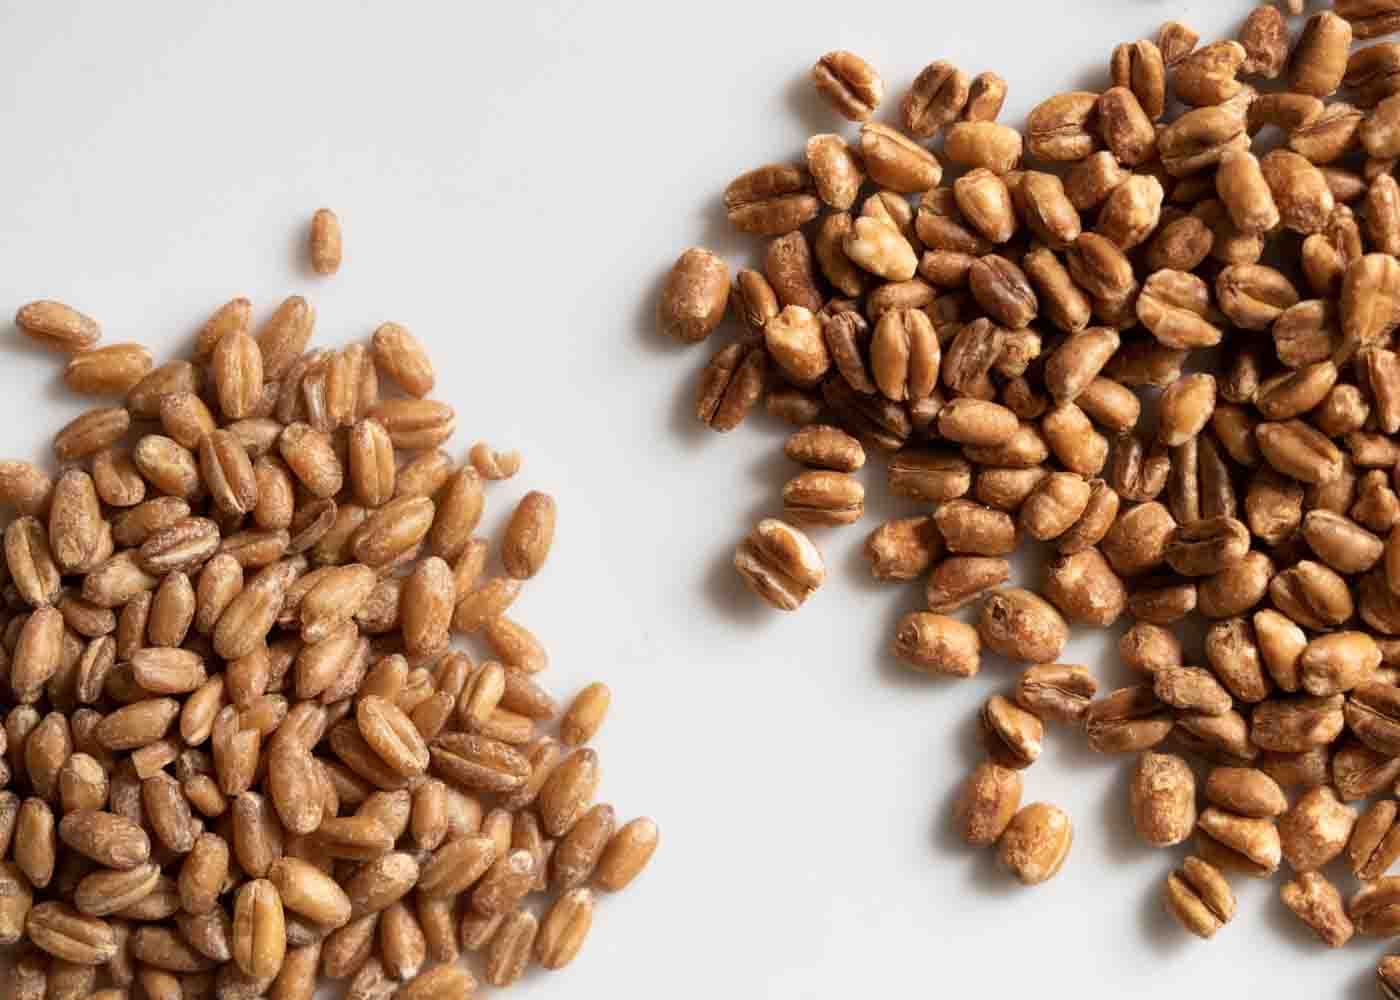 Wheat berries: popped (right) and unpopped (left).